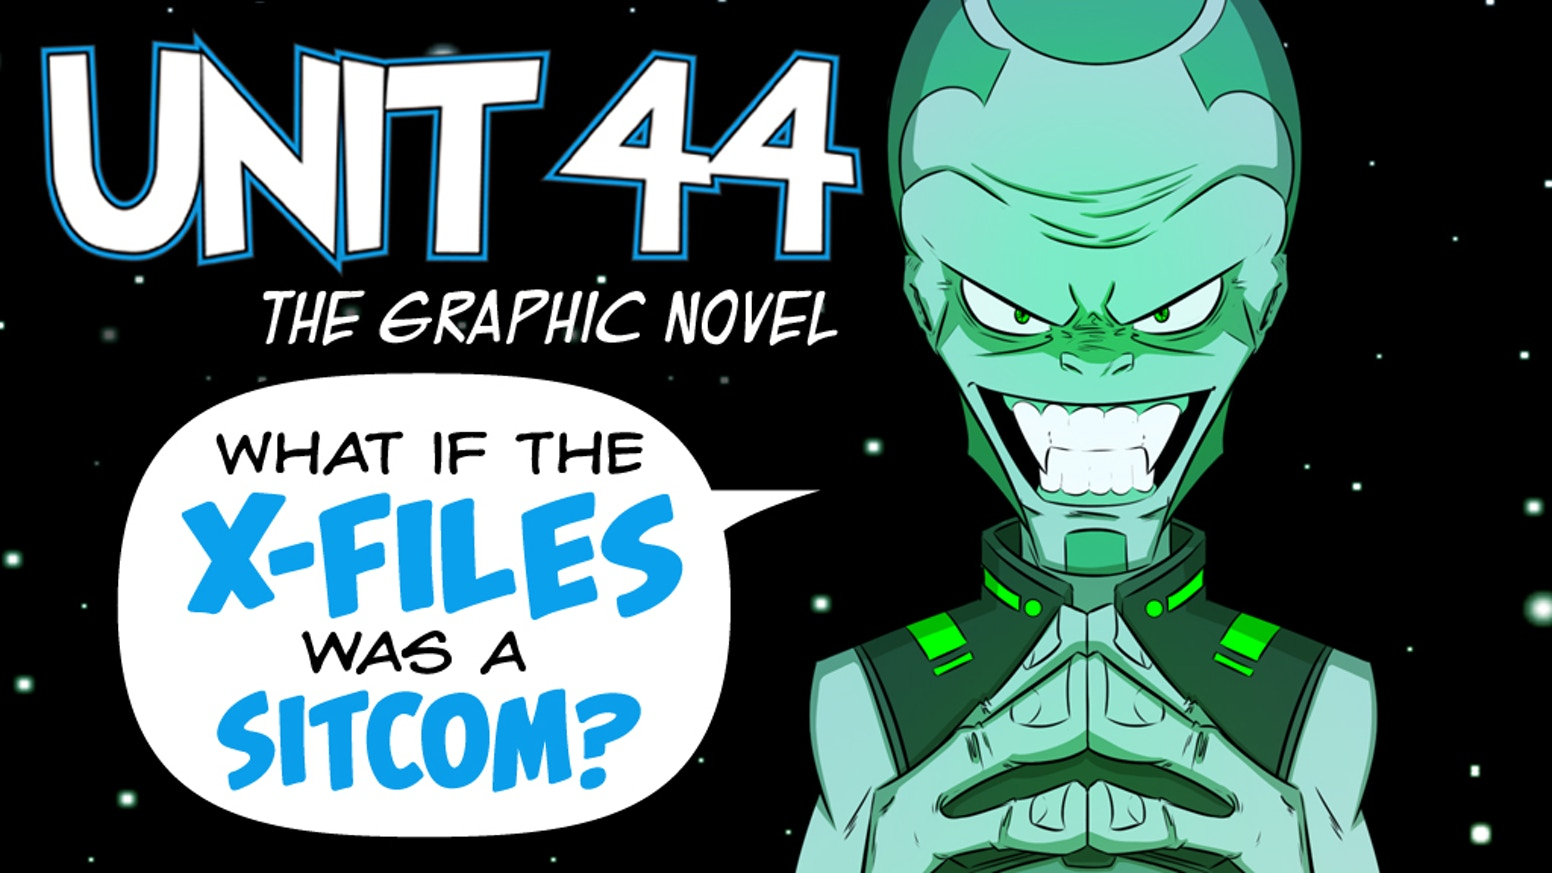 Inept Area 51 employees forget to pay the rent on the facility's off-site storage unit and the secret contents are sold at auction. The Unit 44 graphic novel is published by Alterna Comics.